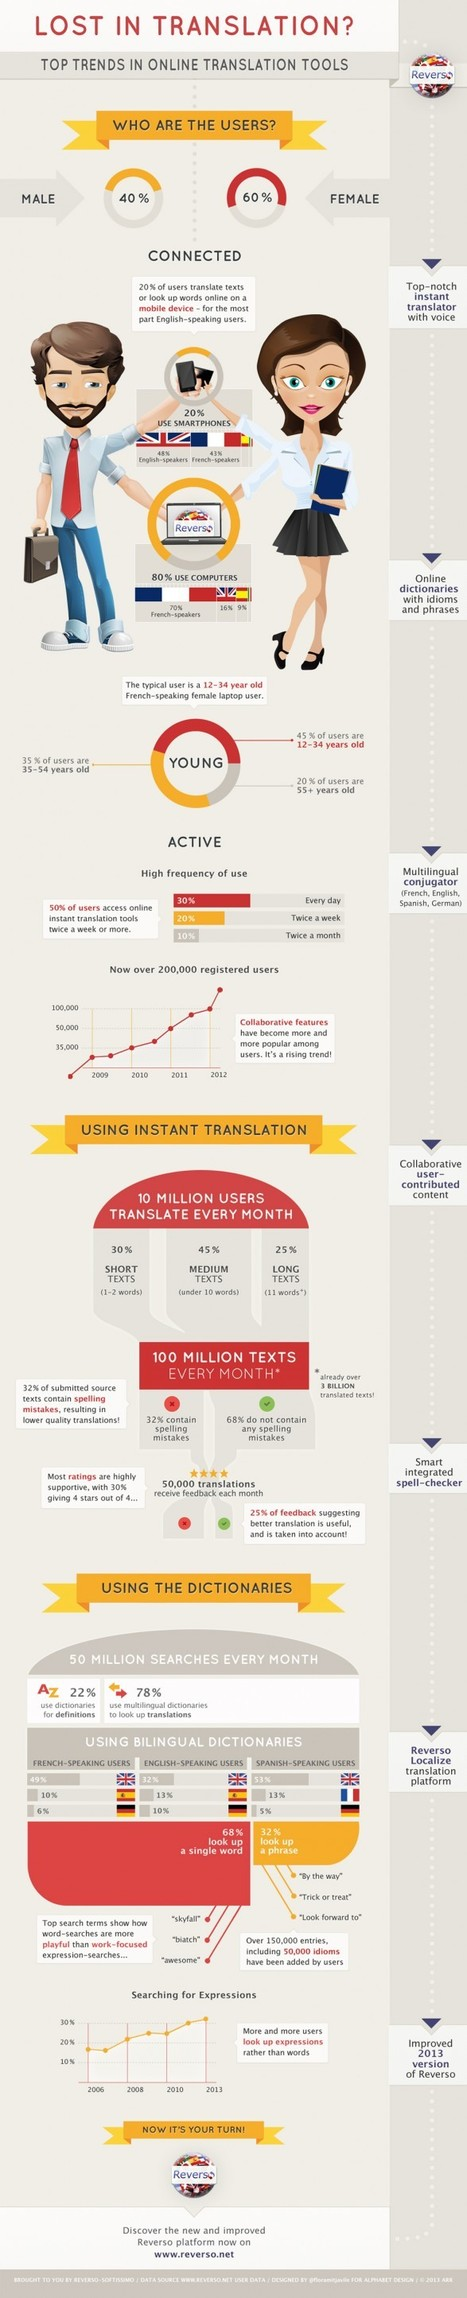 Top Trends in Online Translation Tools [INFOGRAPHIC] | Dana Translation | Scoop.it